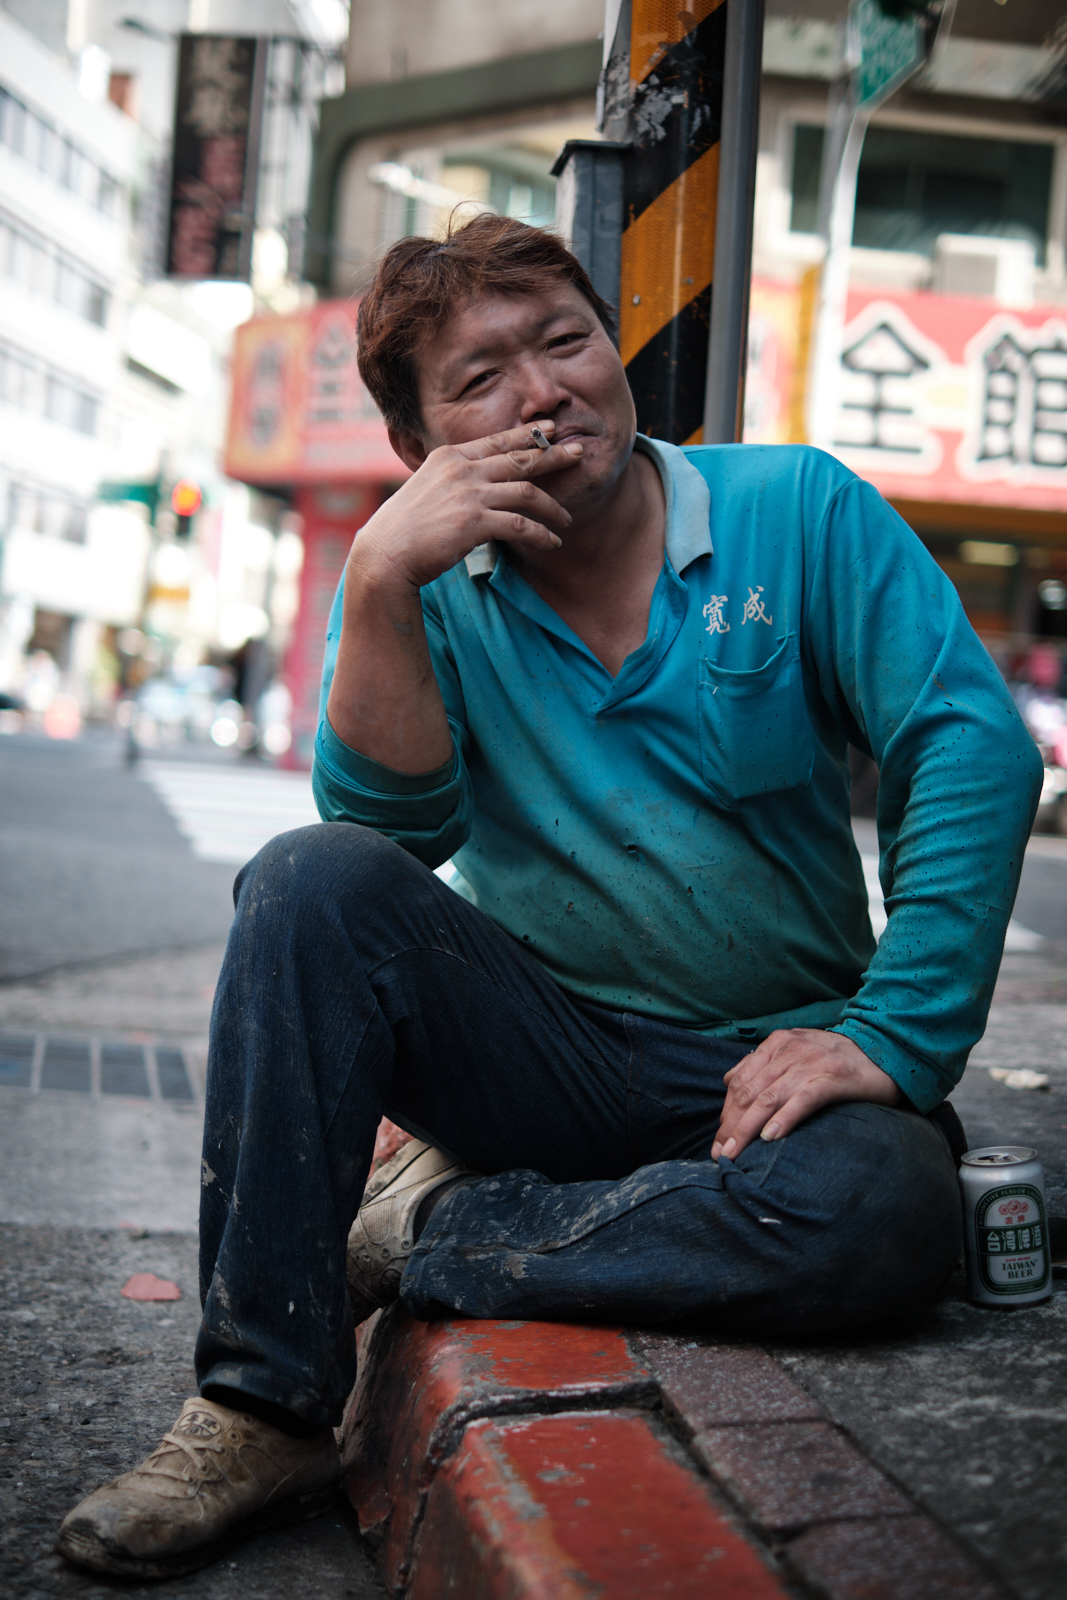 Beer & Smoke Break: Taipei, Taiwan